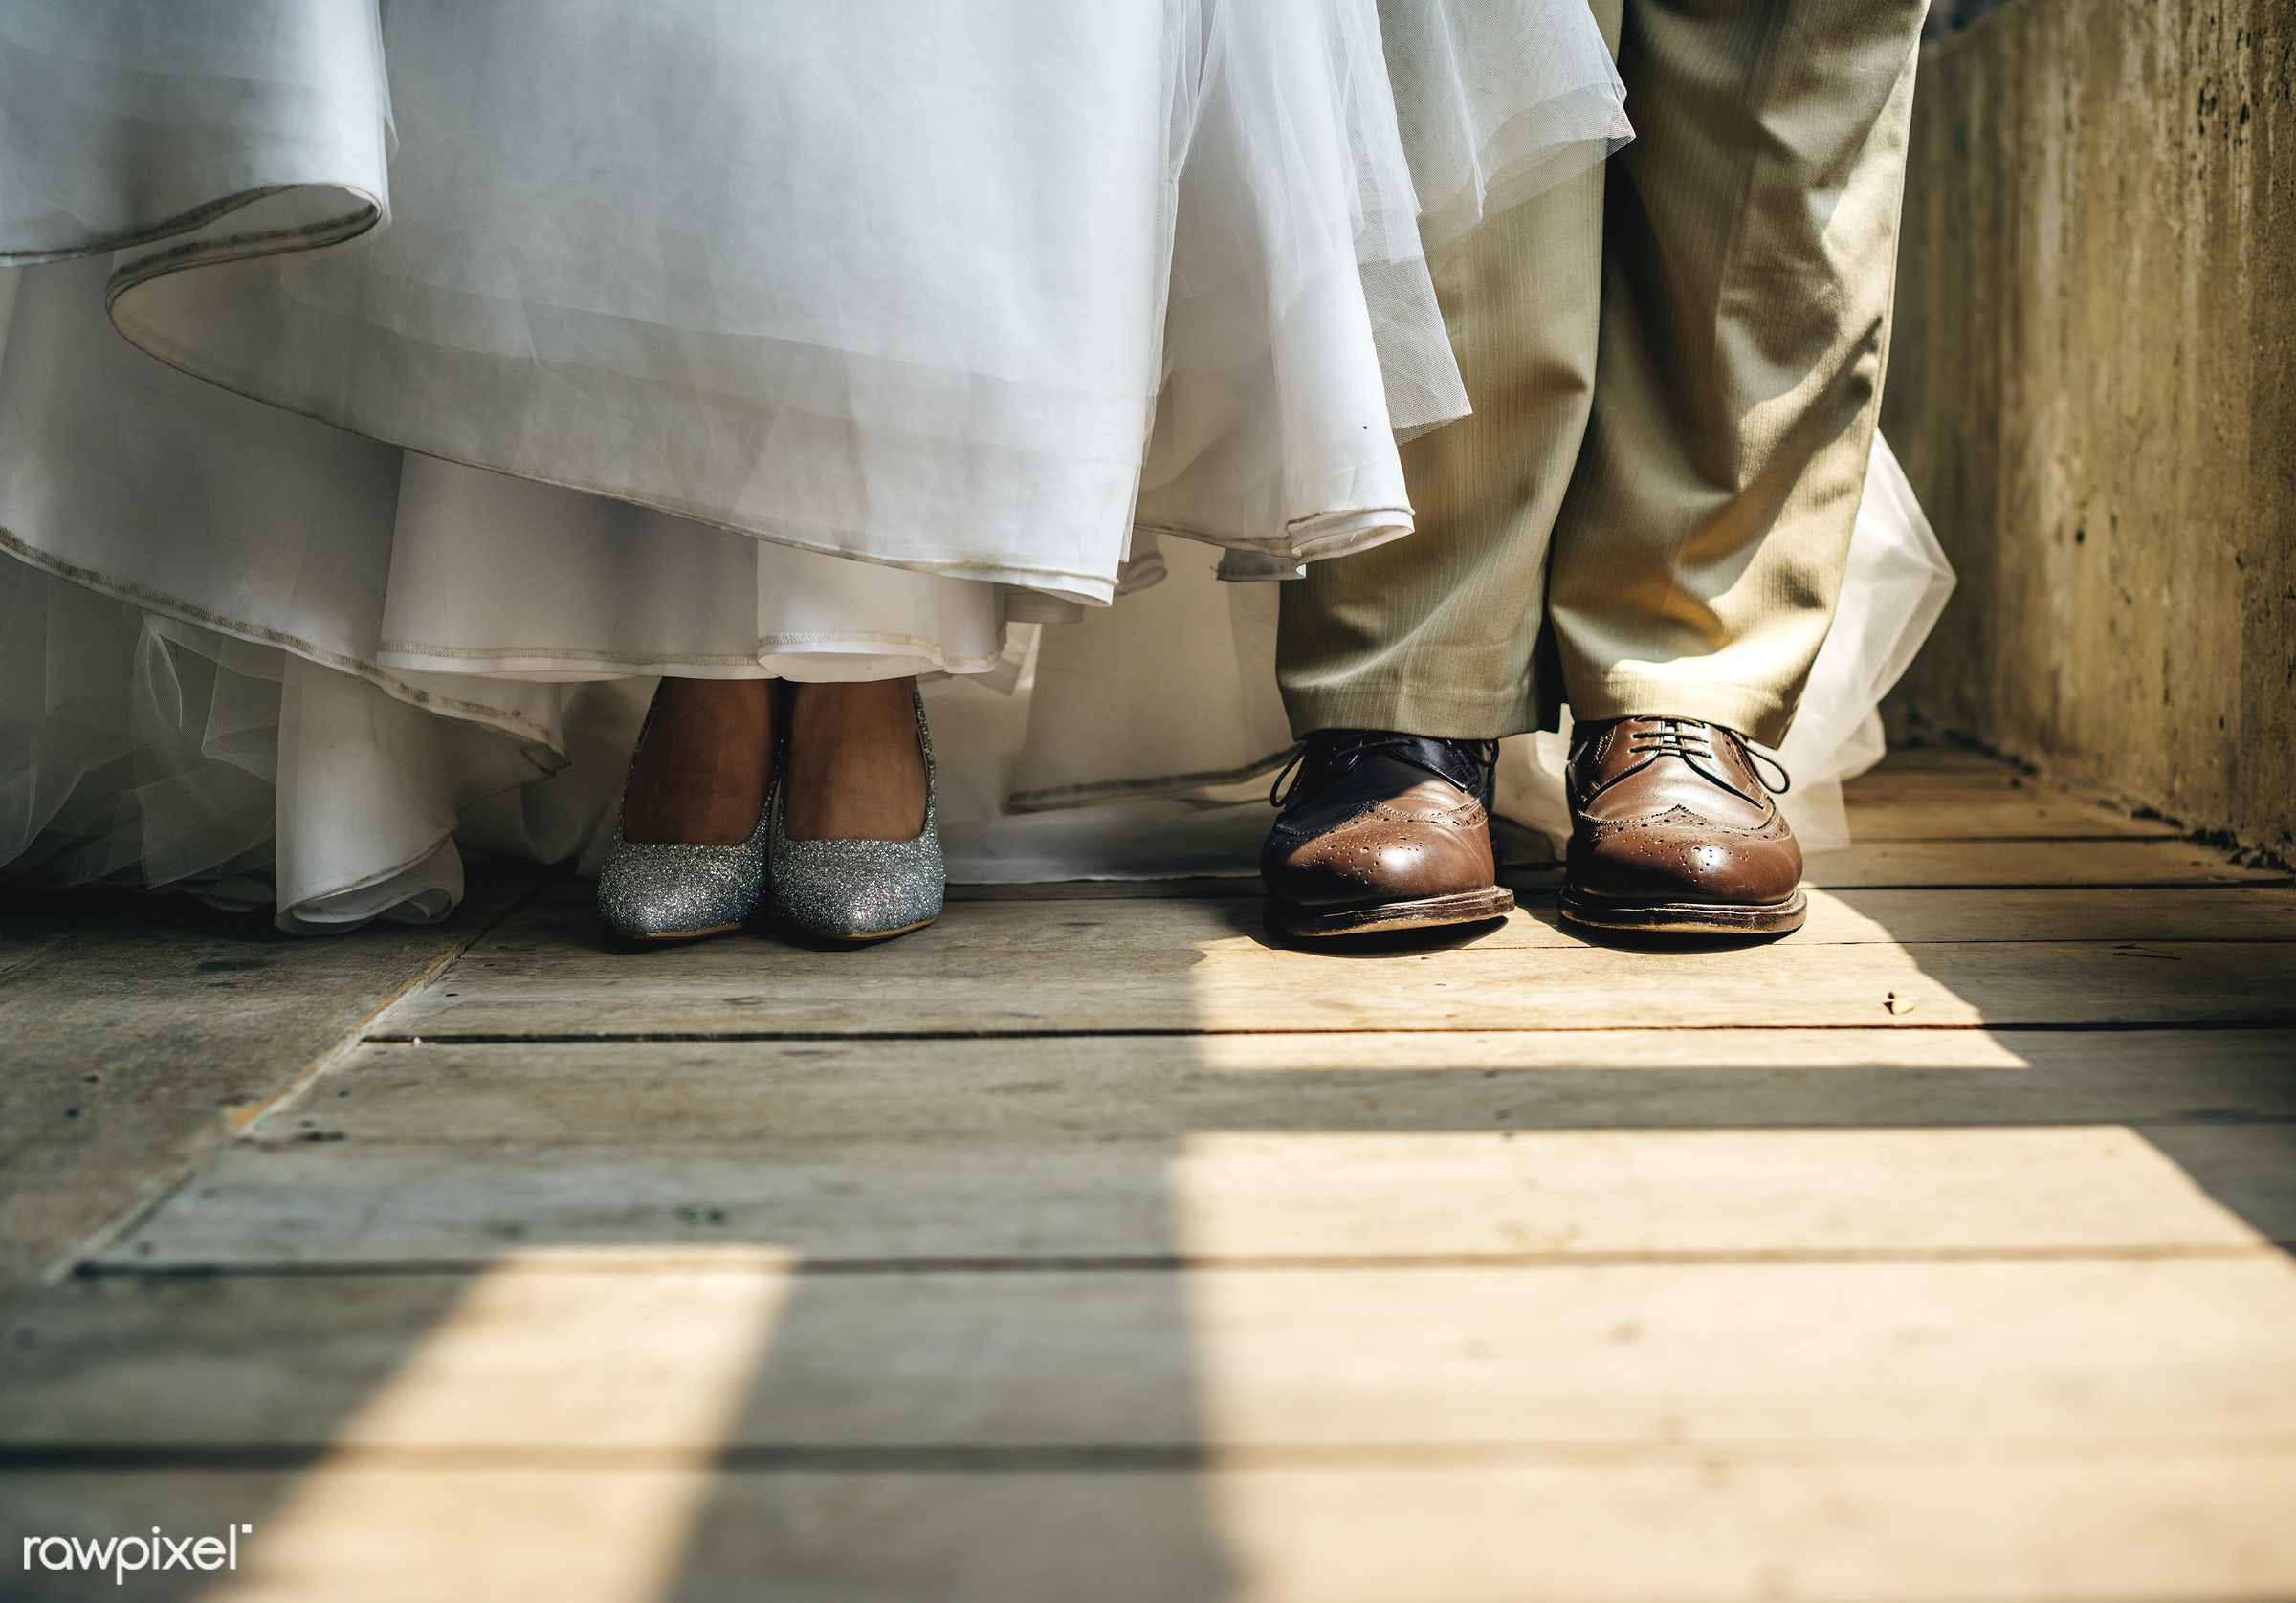 person, wooden floor, occasion, wedding dress, together, married, couple, bride, closeup, shoes, preparation, newlywed,...